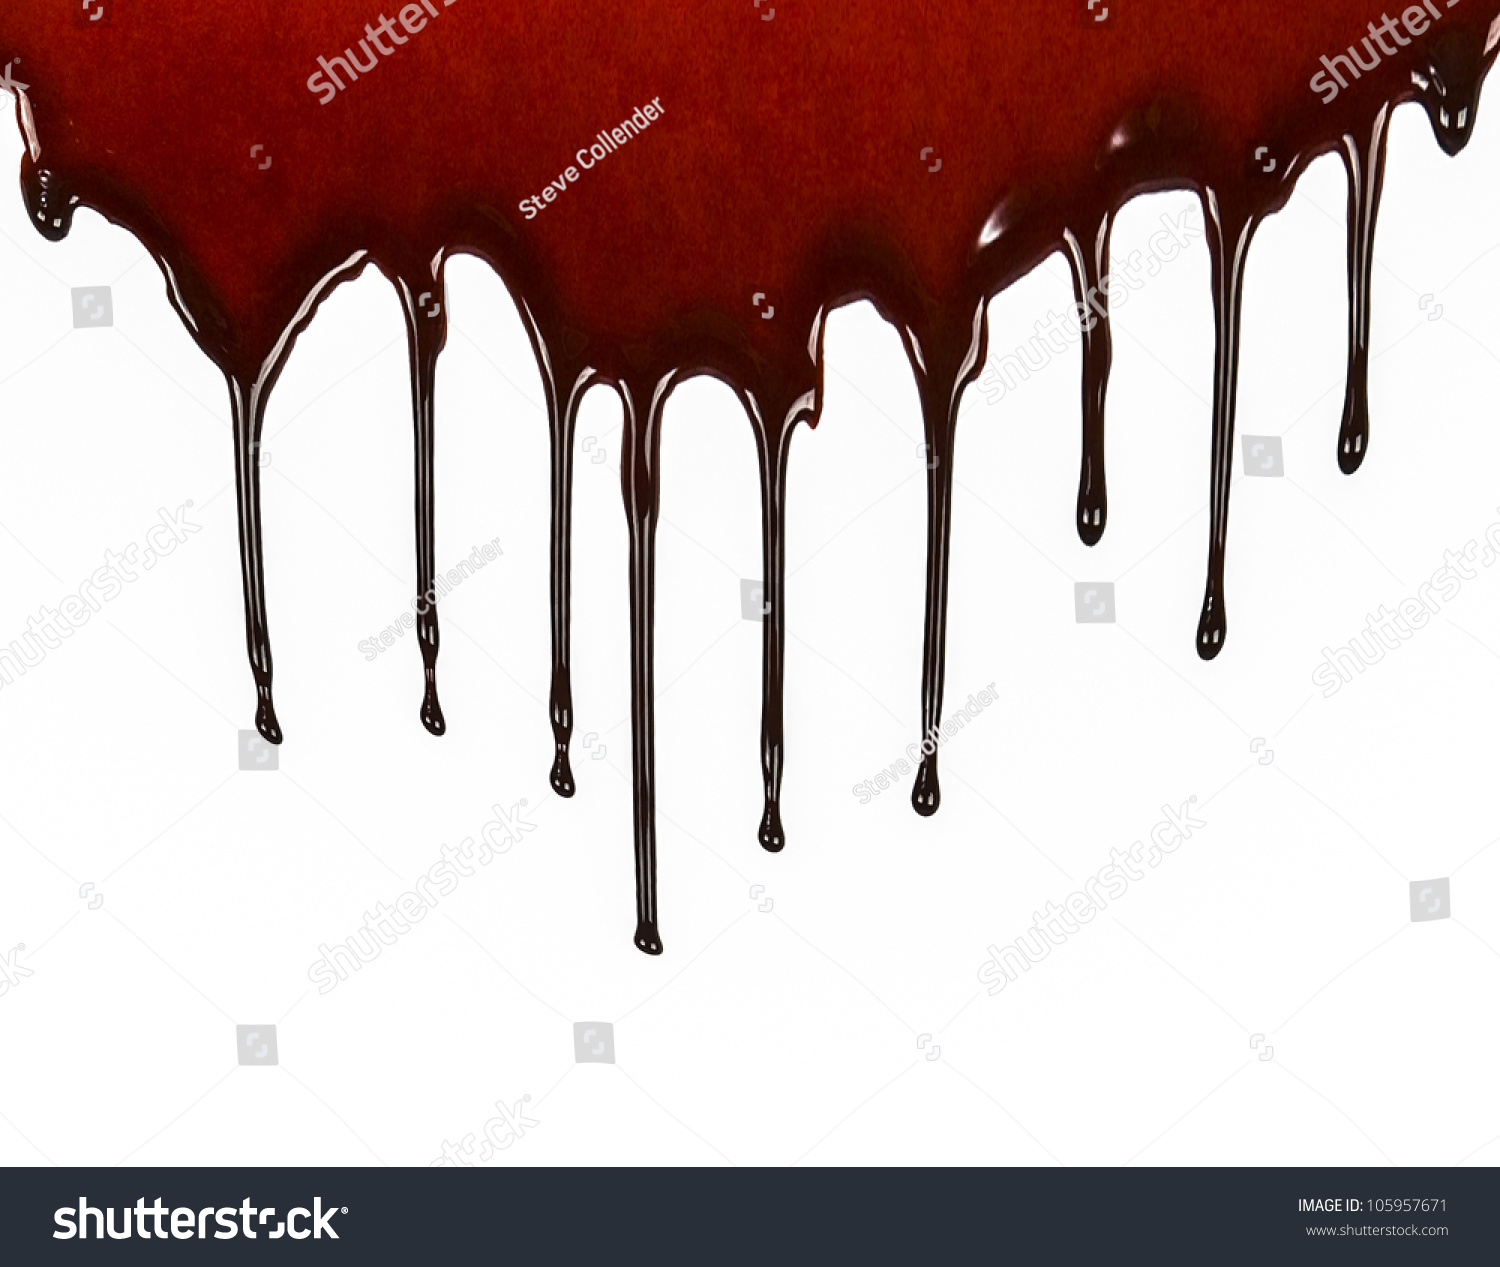 Royalty-free Dripping blood #105957671 Stock Photo ...